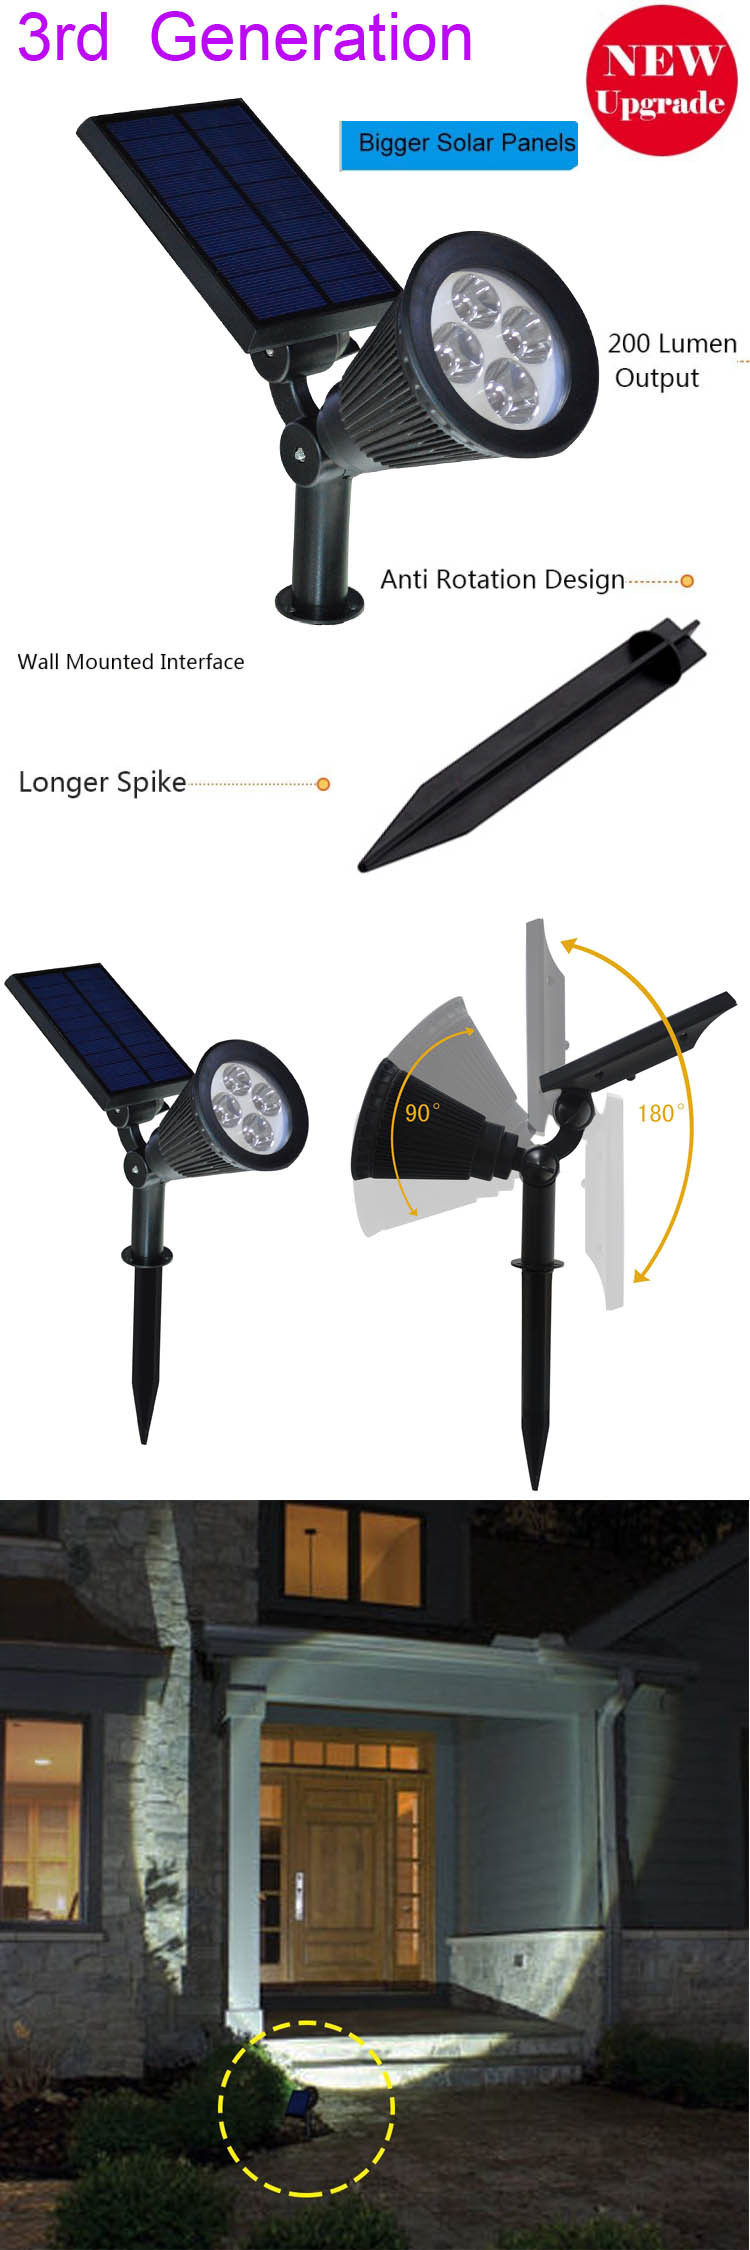 [Upgrated 200 Lumen Output]2-in-1 New Solar power spot garden lights / Solar Power Outdoor Wall Light - Waterproof spotlight